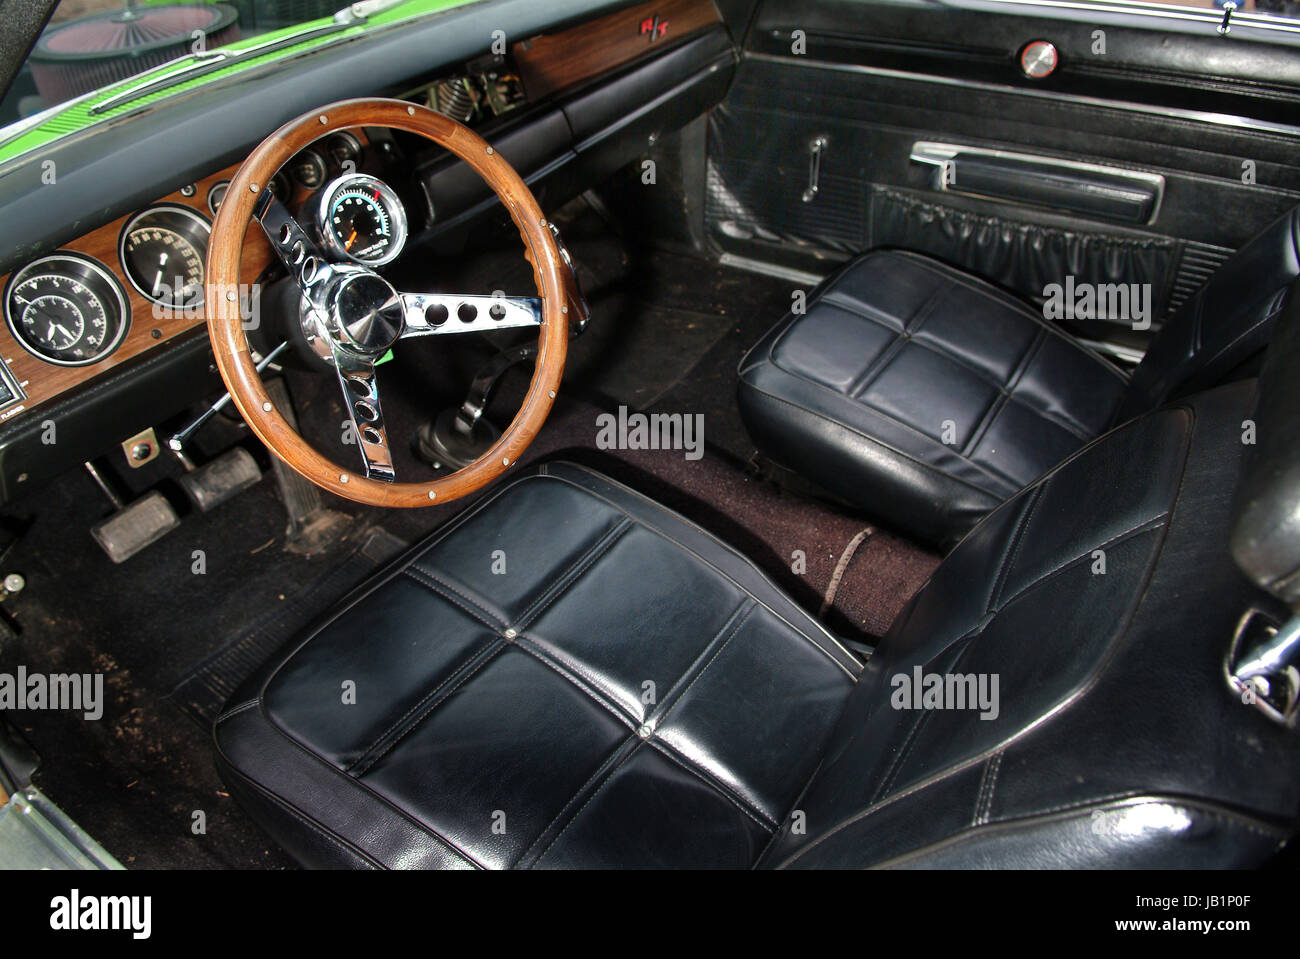 hight resolution of richard hammond and his 1969 dodge charger 440 r t stock image